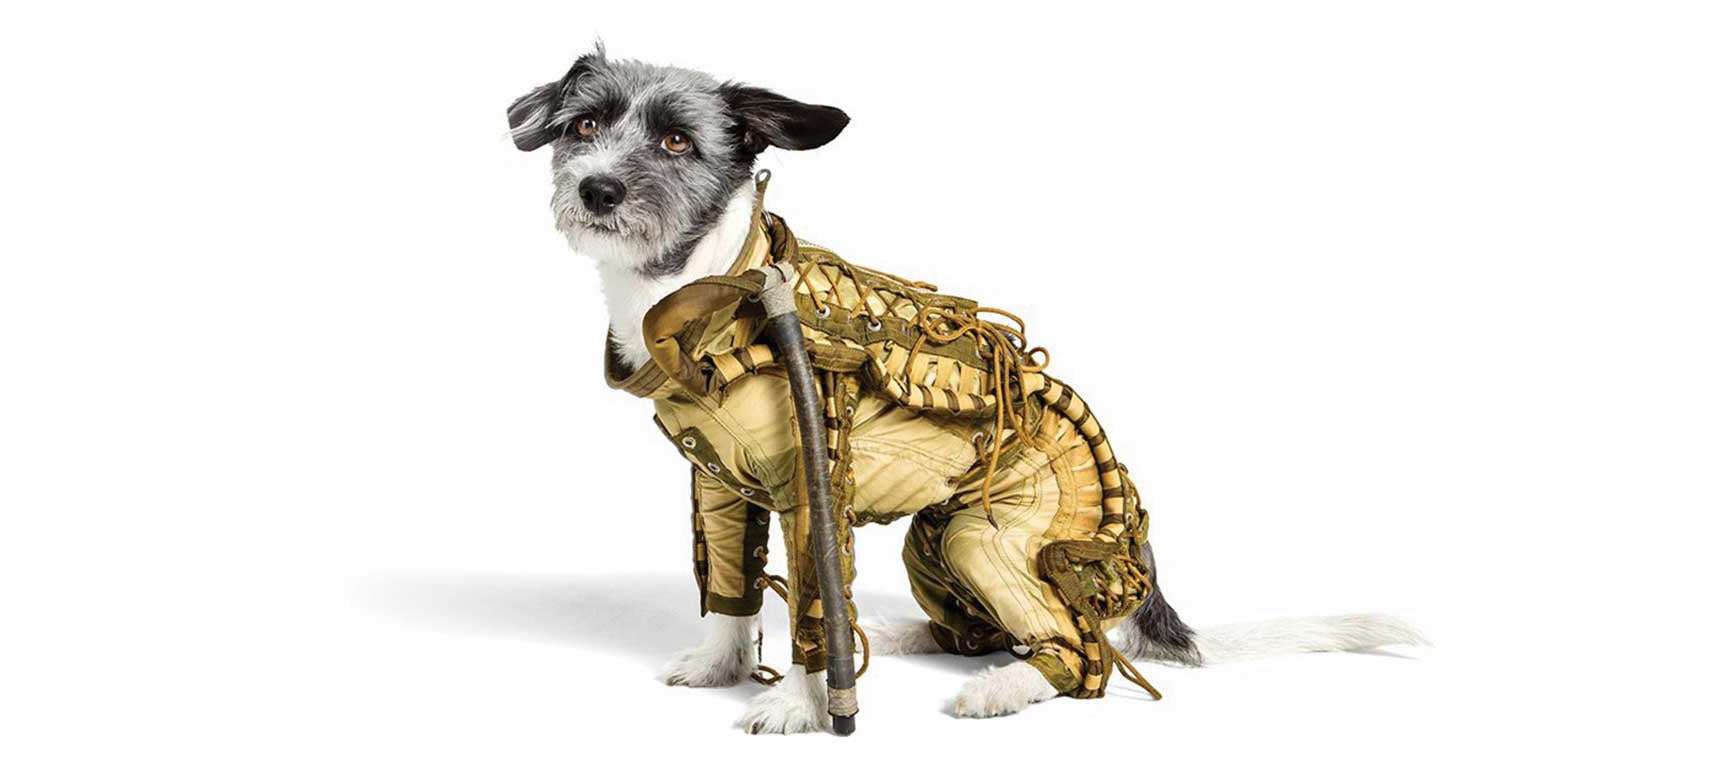 You Can Buy This Adorable, Original Soviet Spacesuit For Your Dog